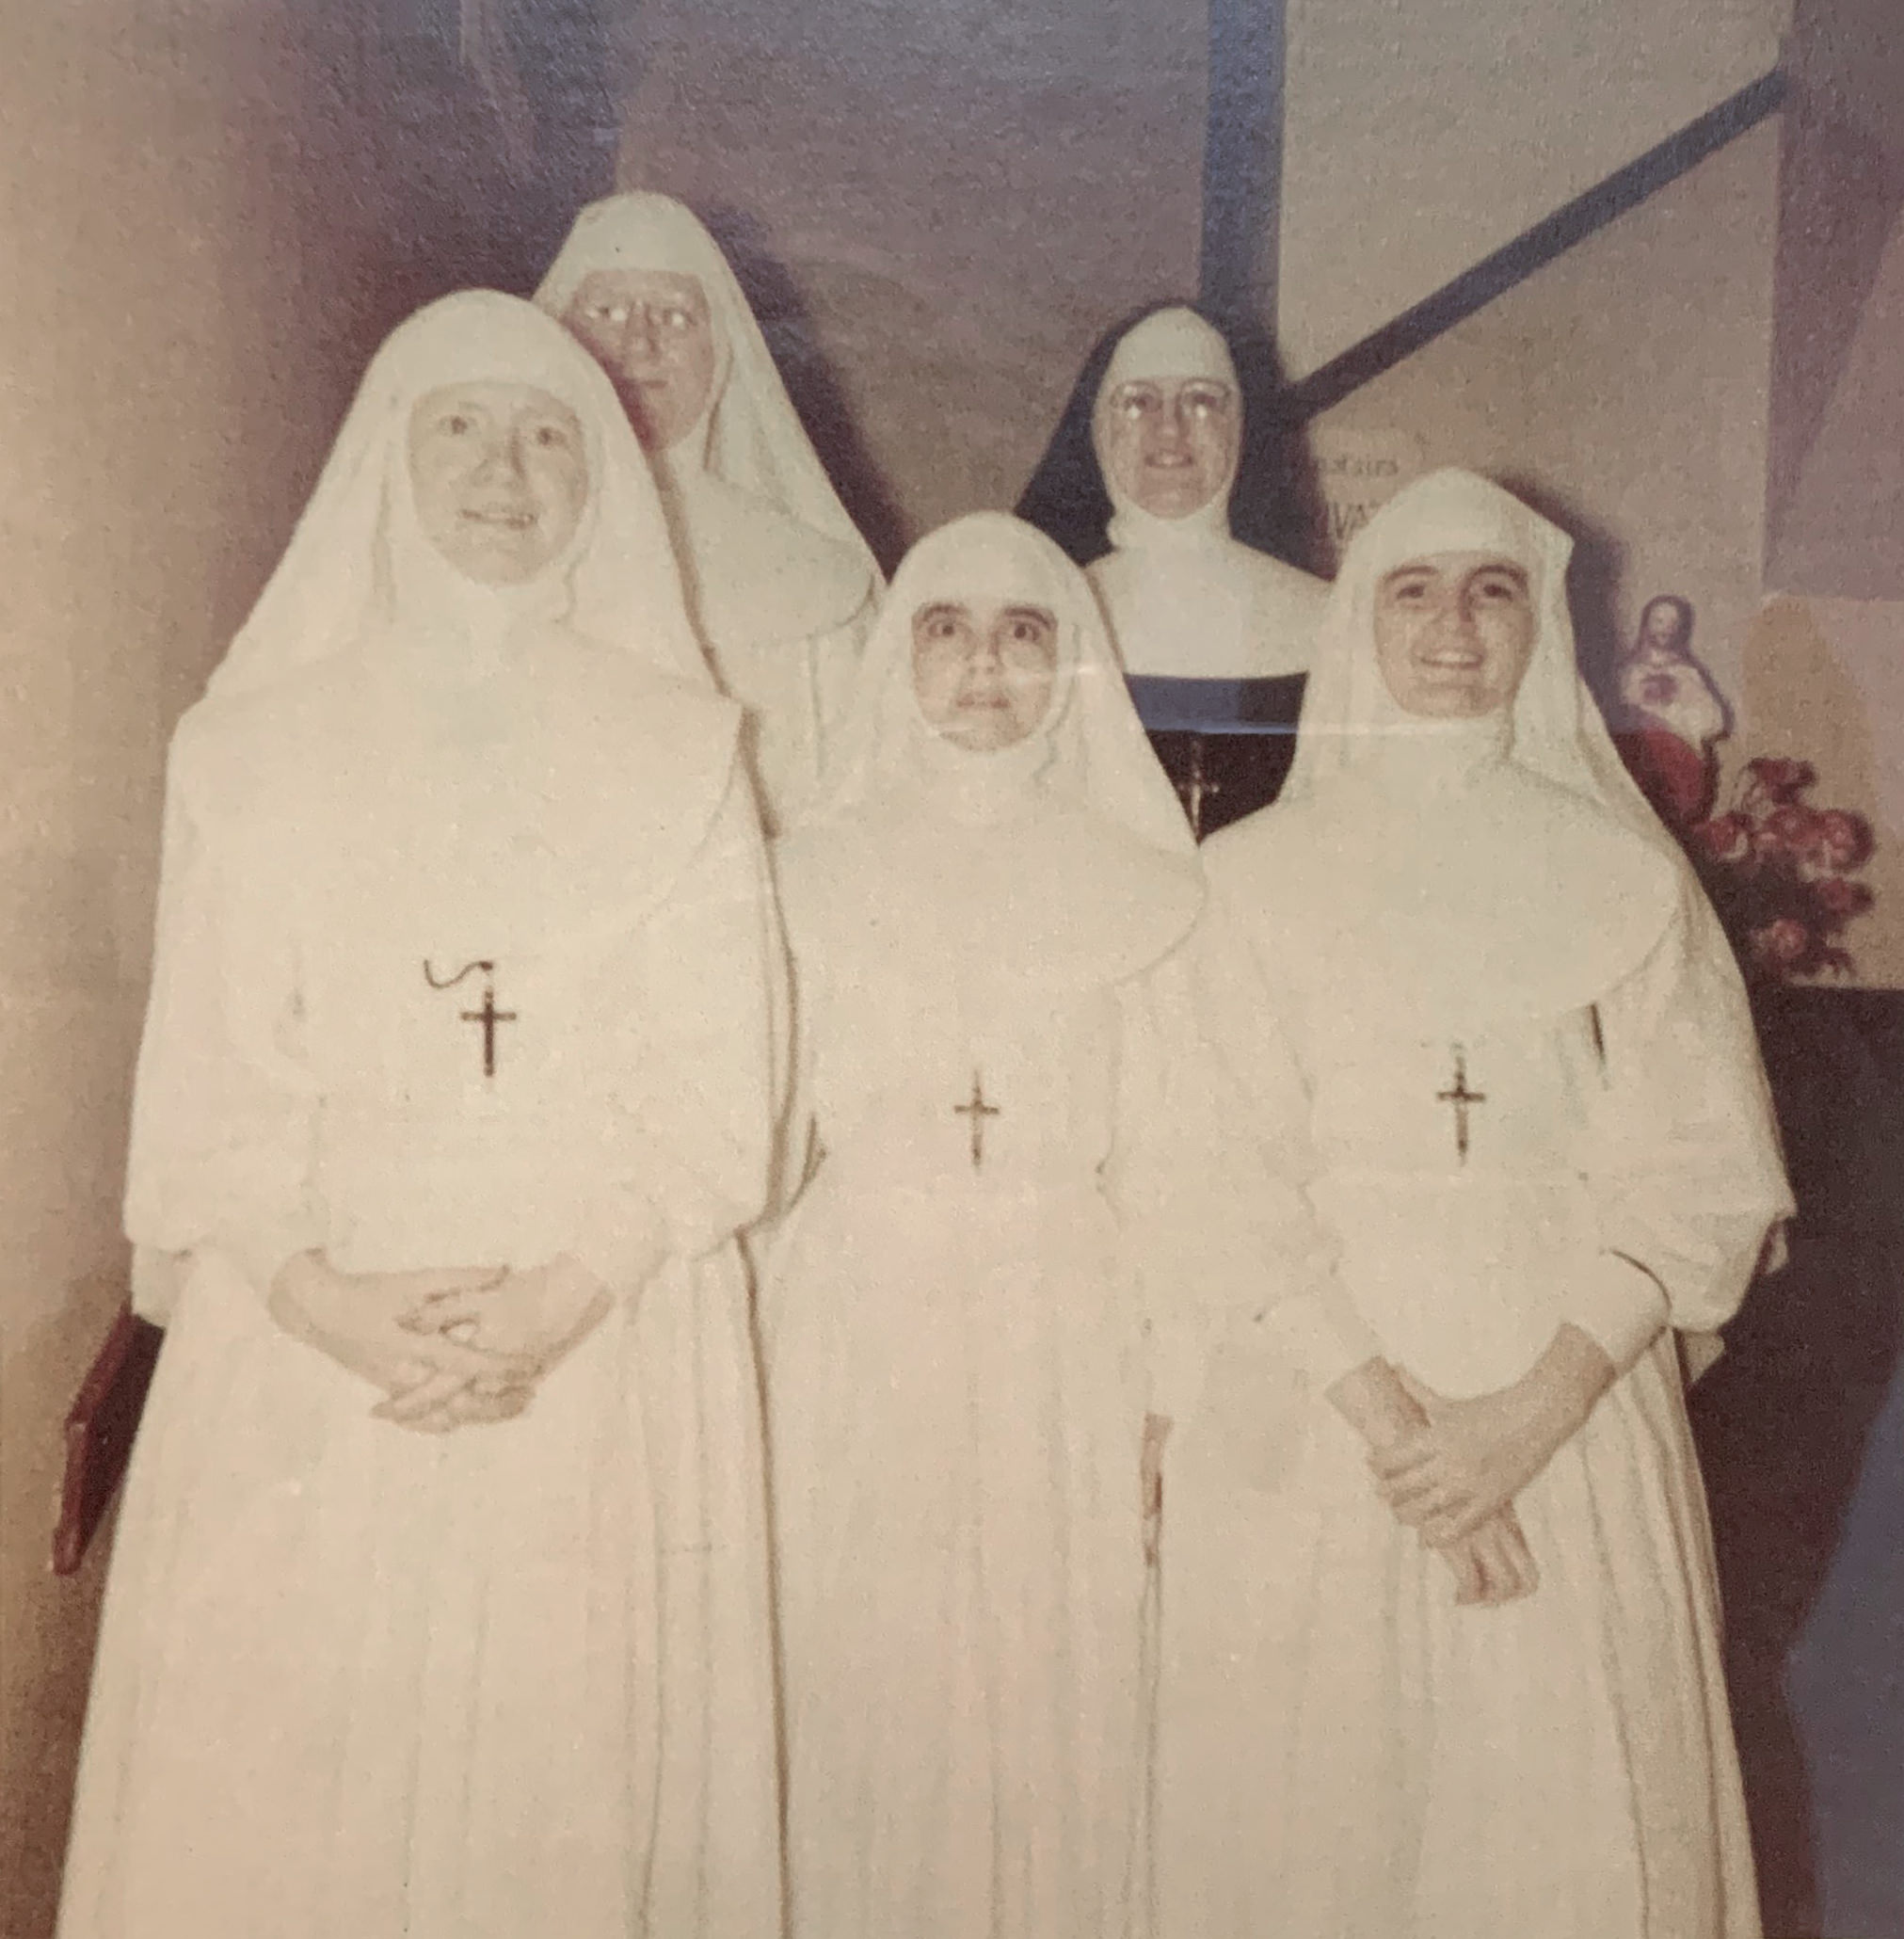 The Sisters of St. Joseph have been instrumental in helping to form New Roads and the surrounding area in the 20th century. They have been associated with Pointe Coupee General Hospital, St. Joseph Academy, Catholic of Pointe Coupee, and St. Mary of False River.